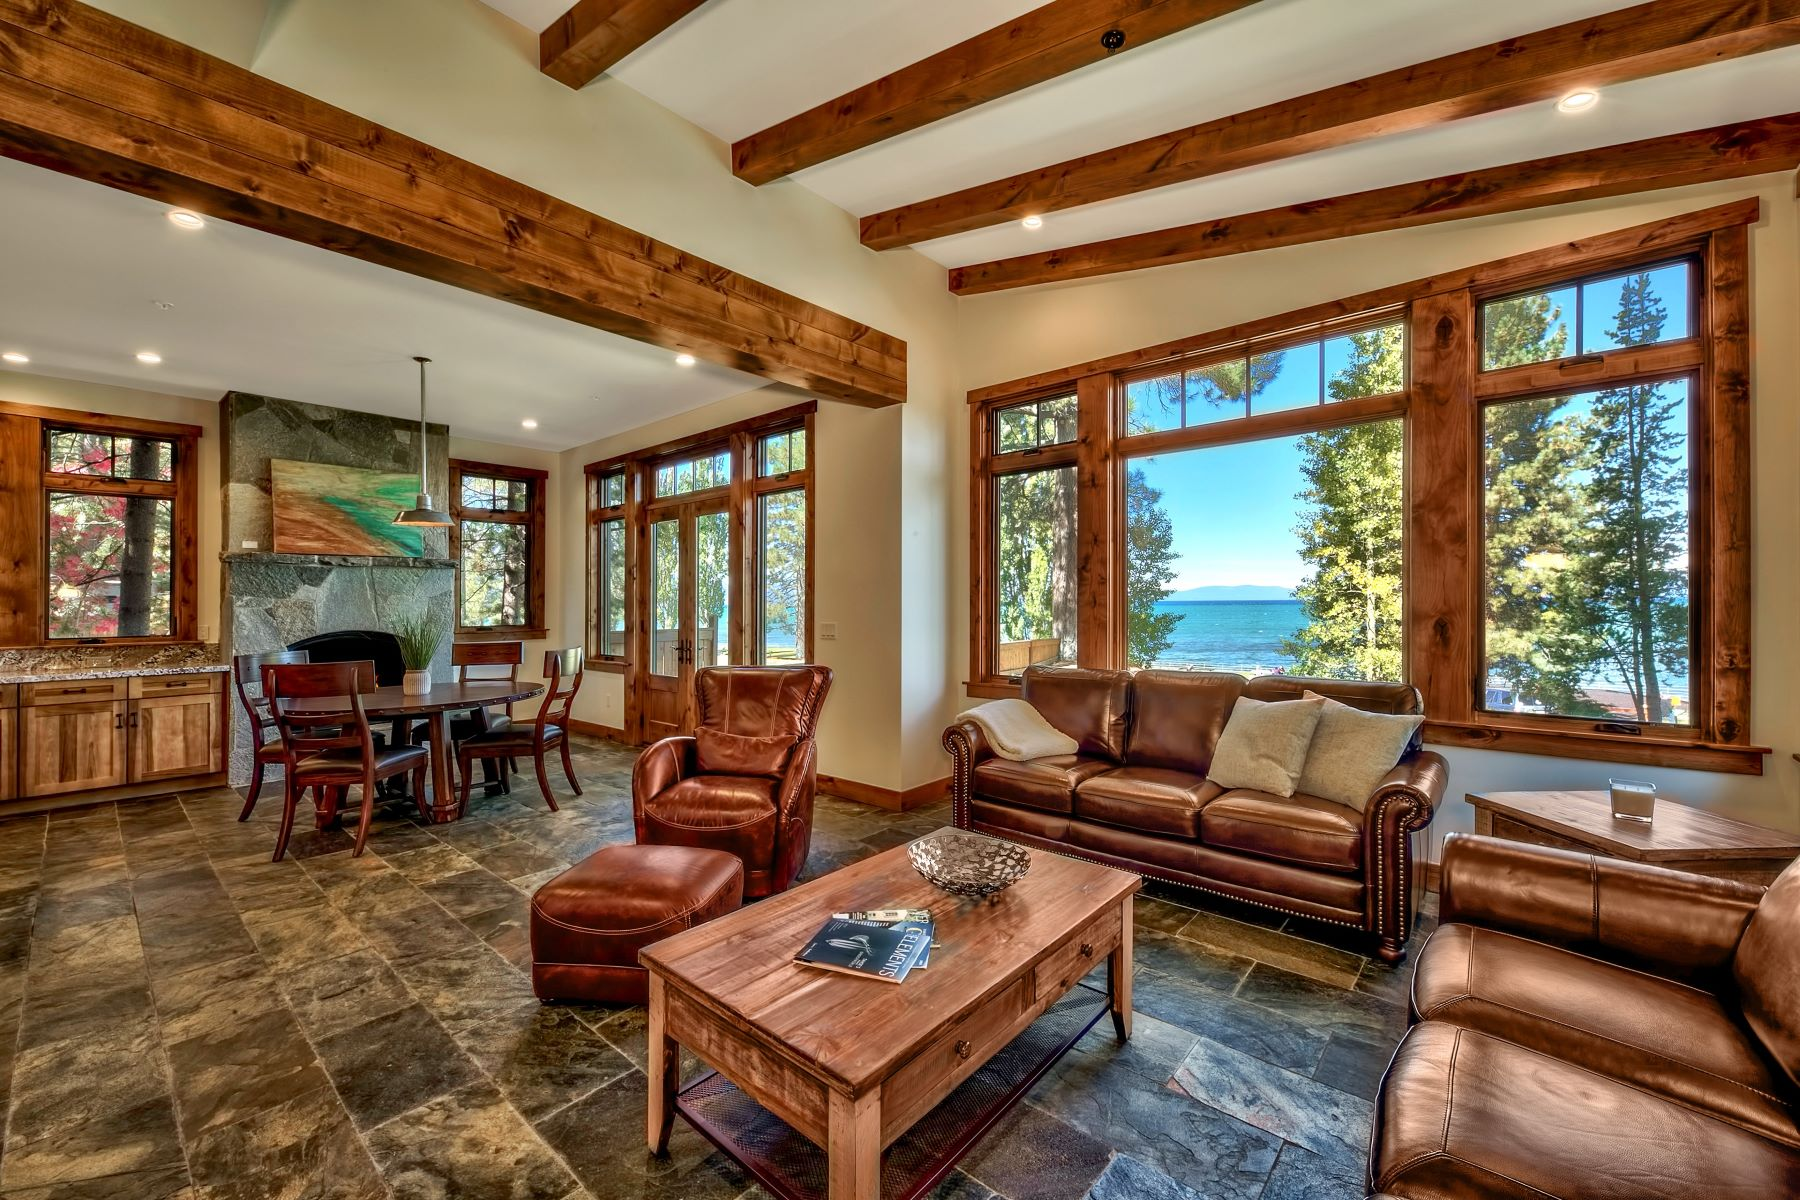 Additional photo for property listing at 819 Lakeview Ave, South Lake Tahoe, CA 96150 819 Lakeview Ave South Lake Tahoe, California 96150 United States